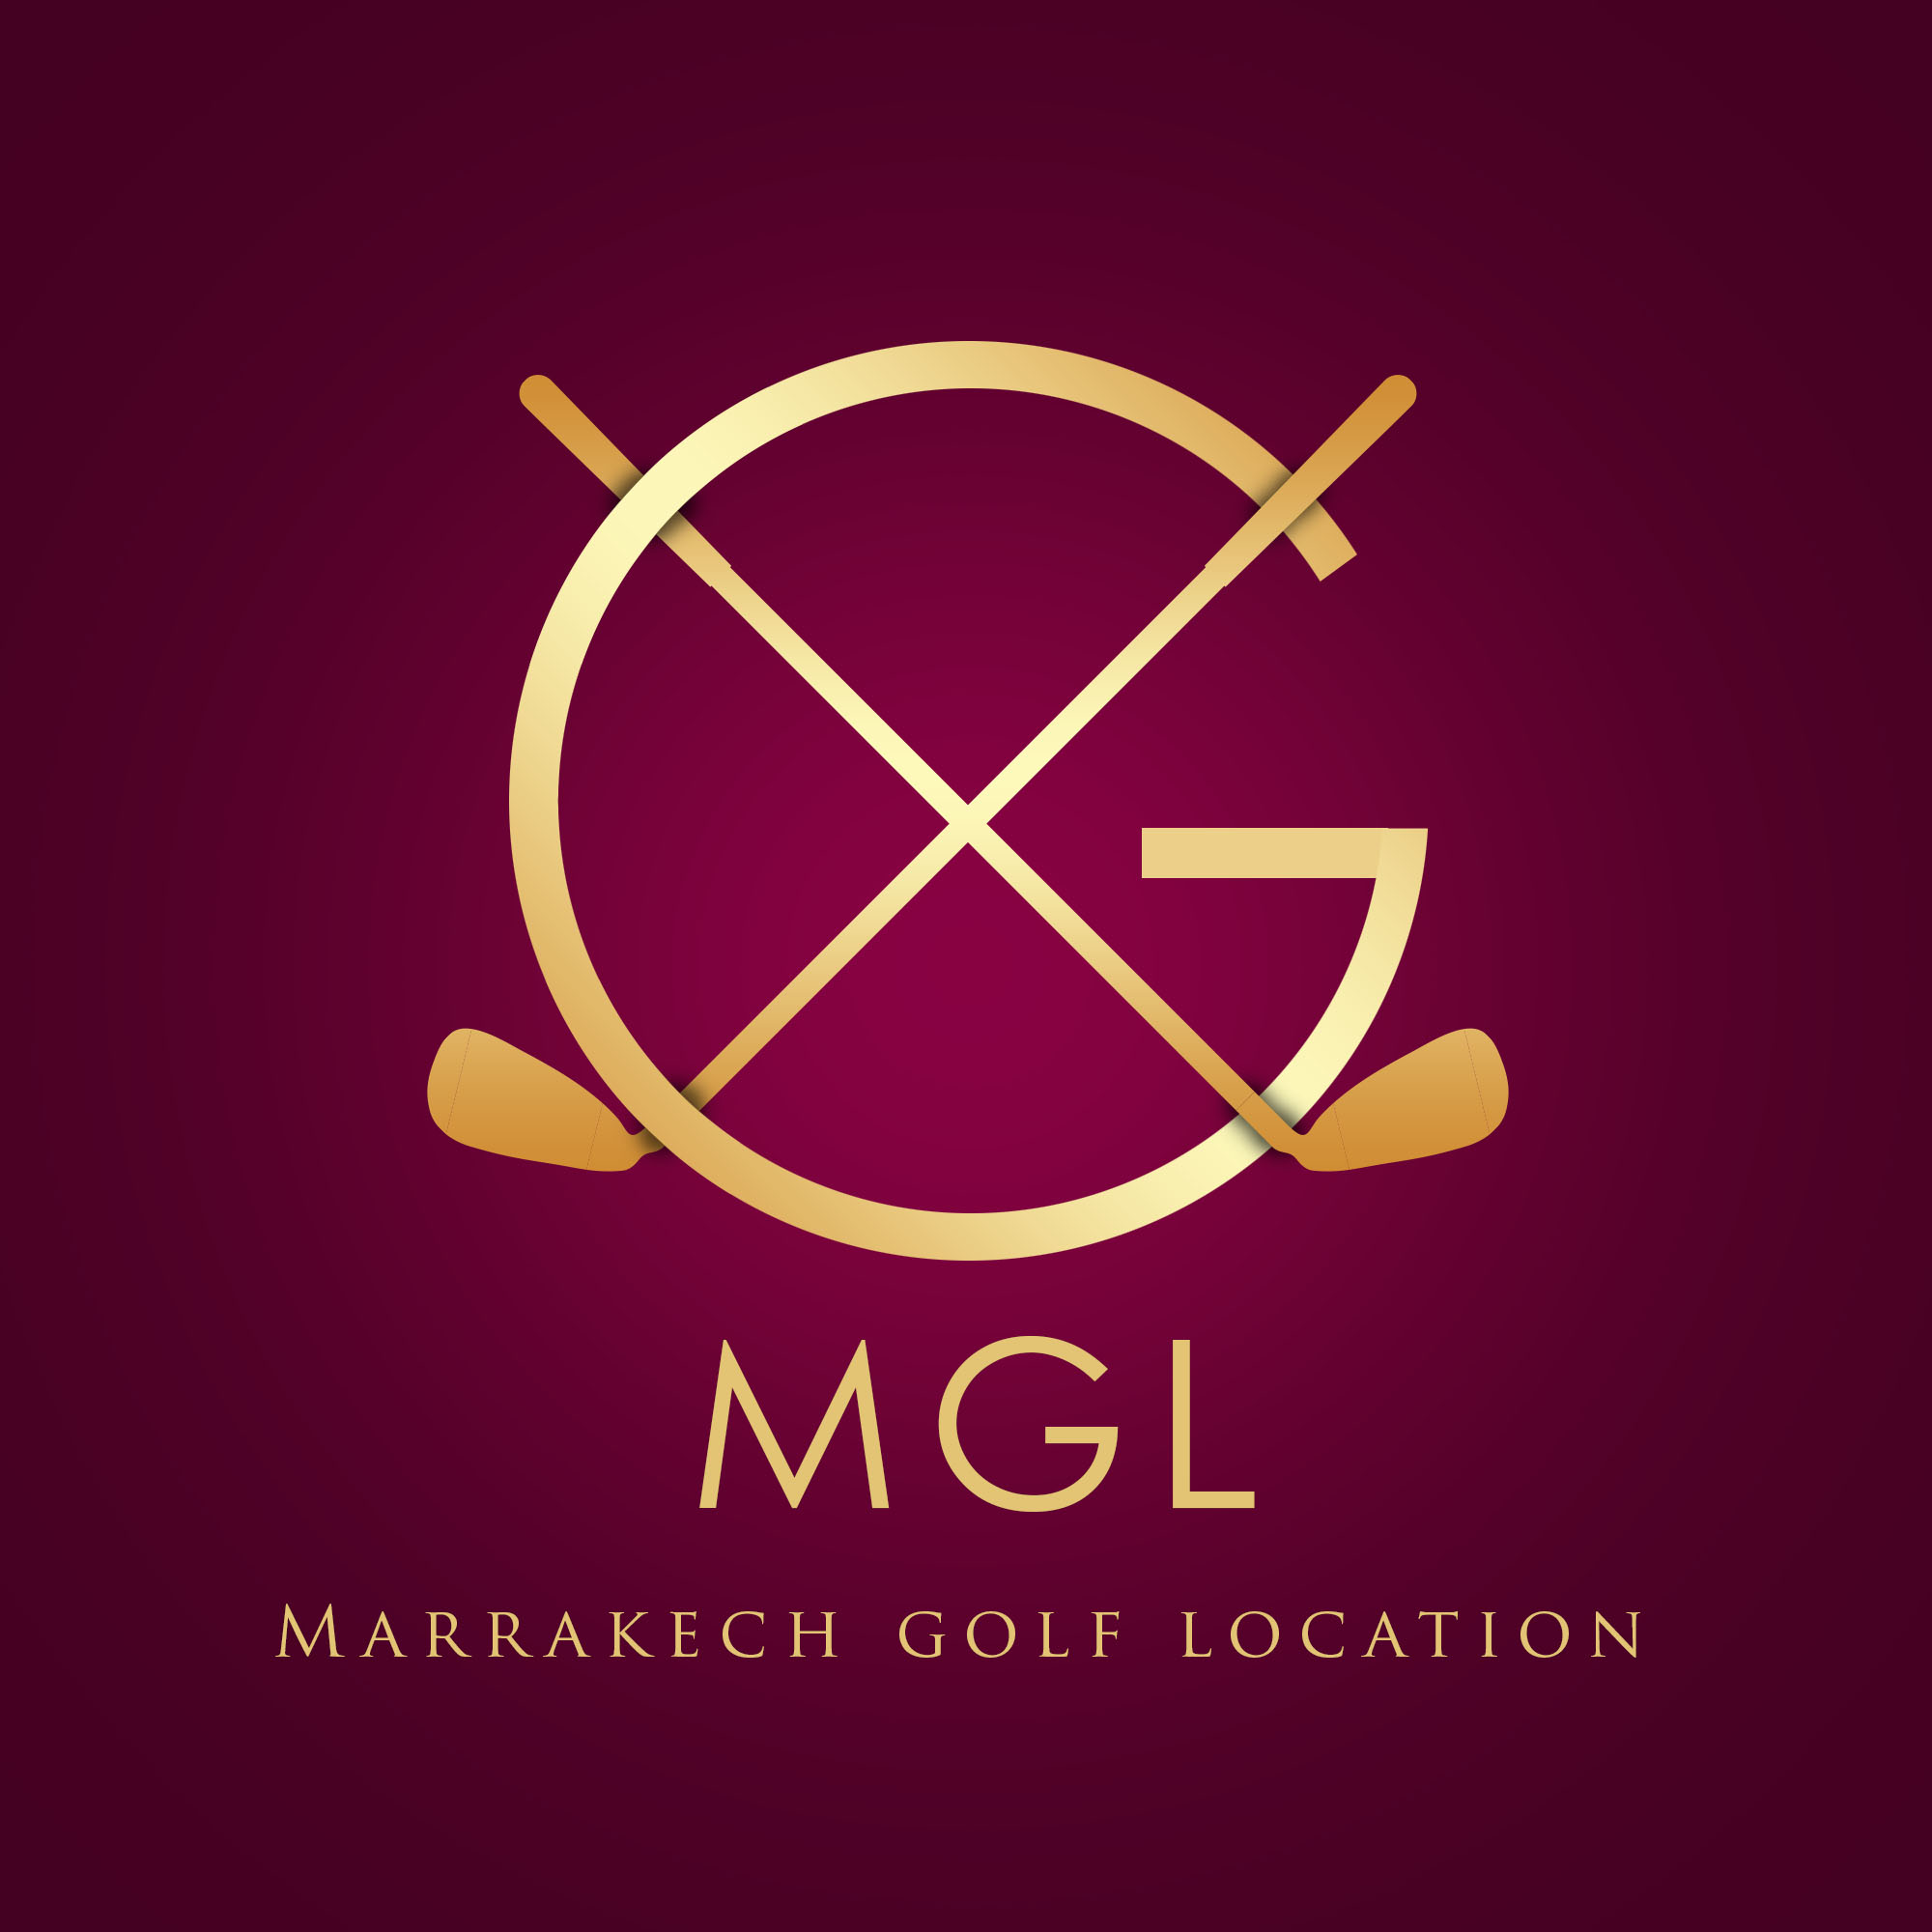 Logo de Marrakech golf location.